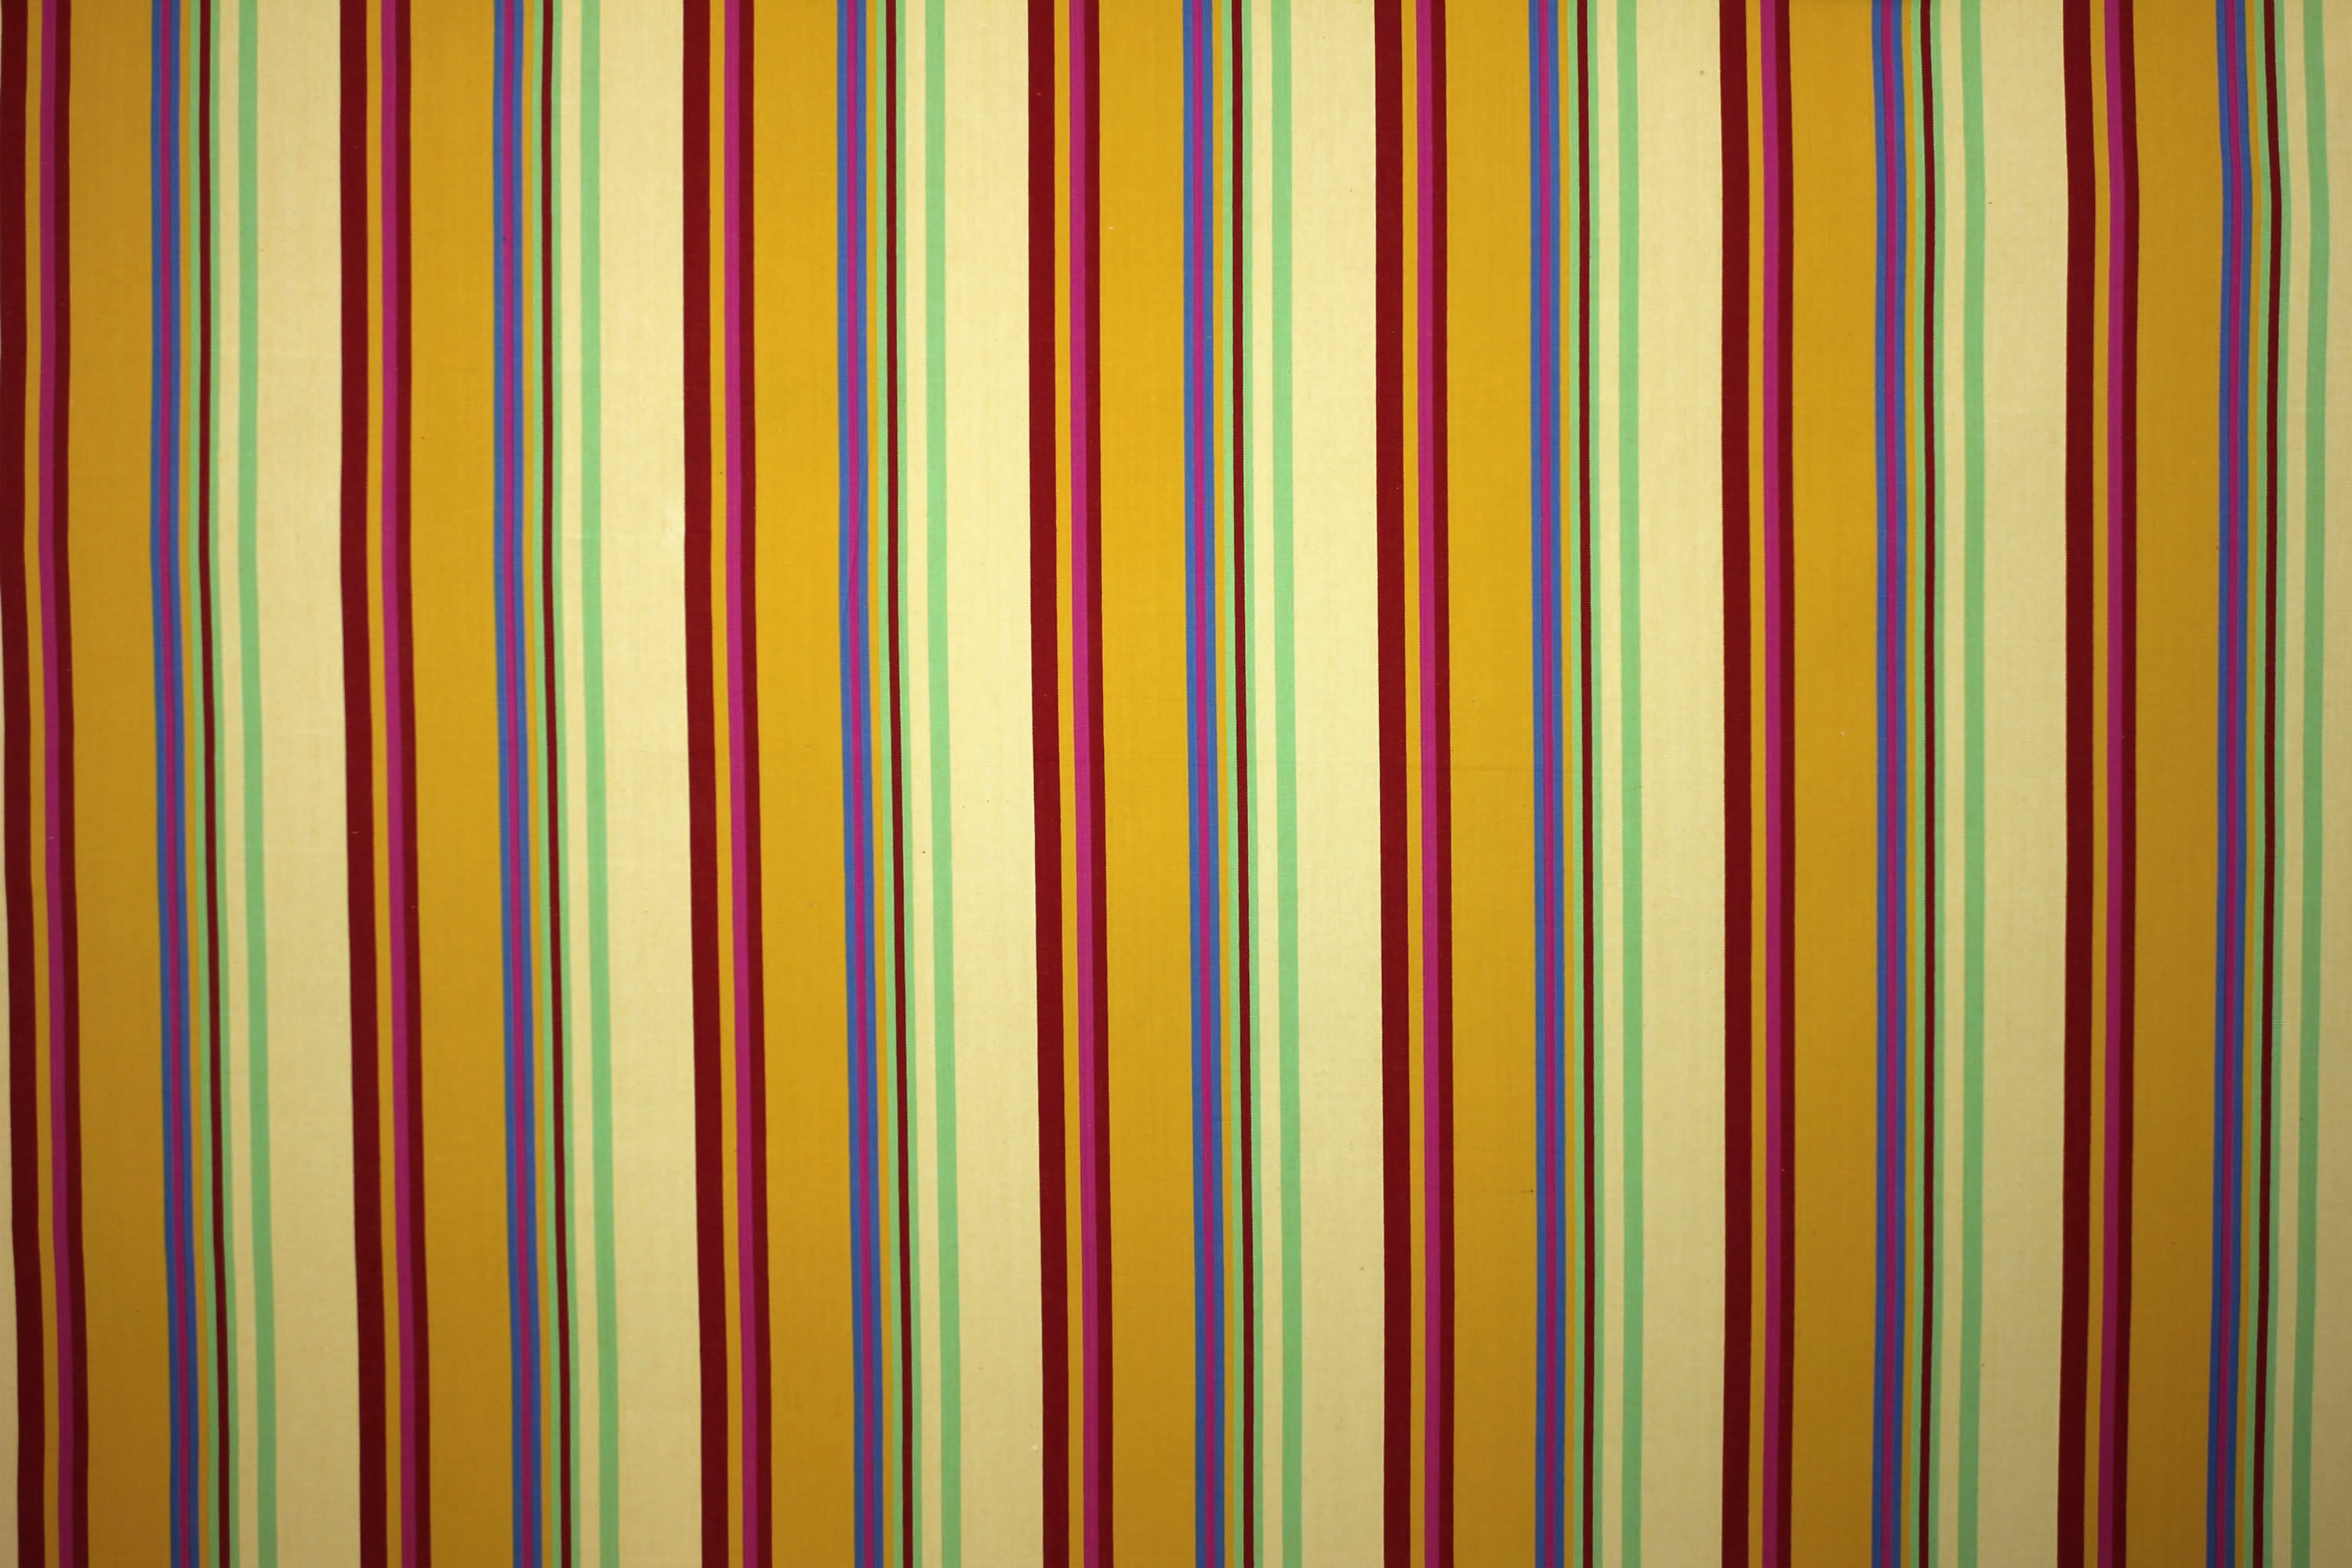 Pale Yellow Striped Fabrics | Stripe Cotton Fabrics | Striped Curtain Fabrics | Upholstery Fabrics  Volleyball Stripes